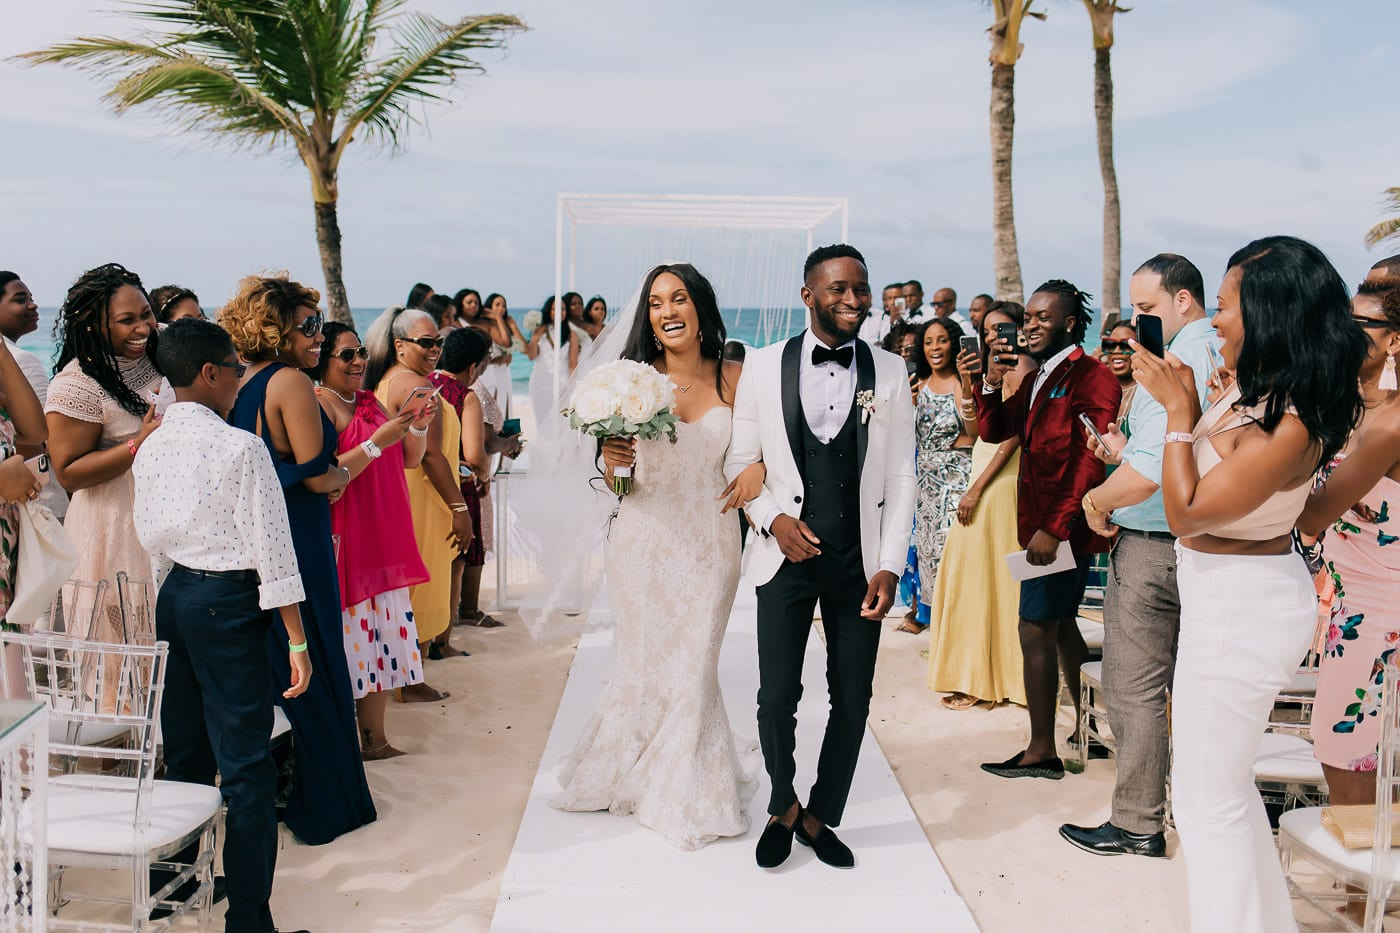 best time for a wedding ceremony in punta cana